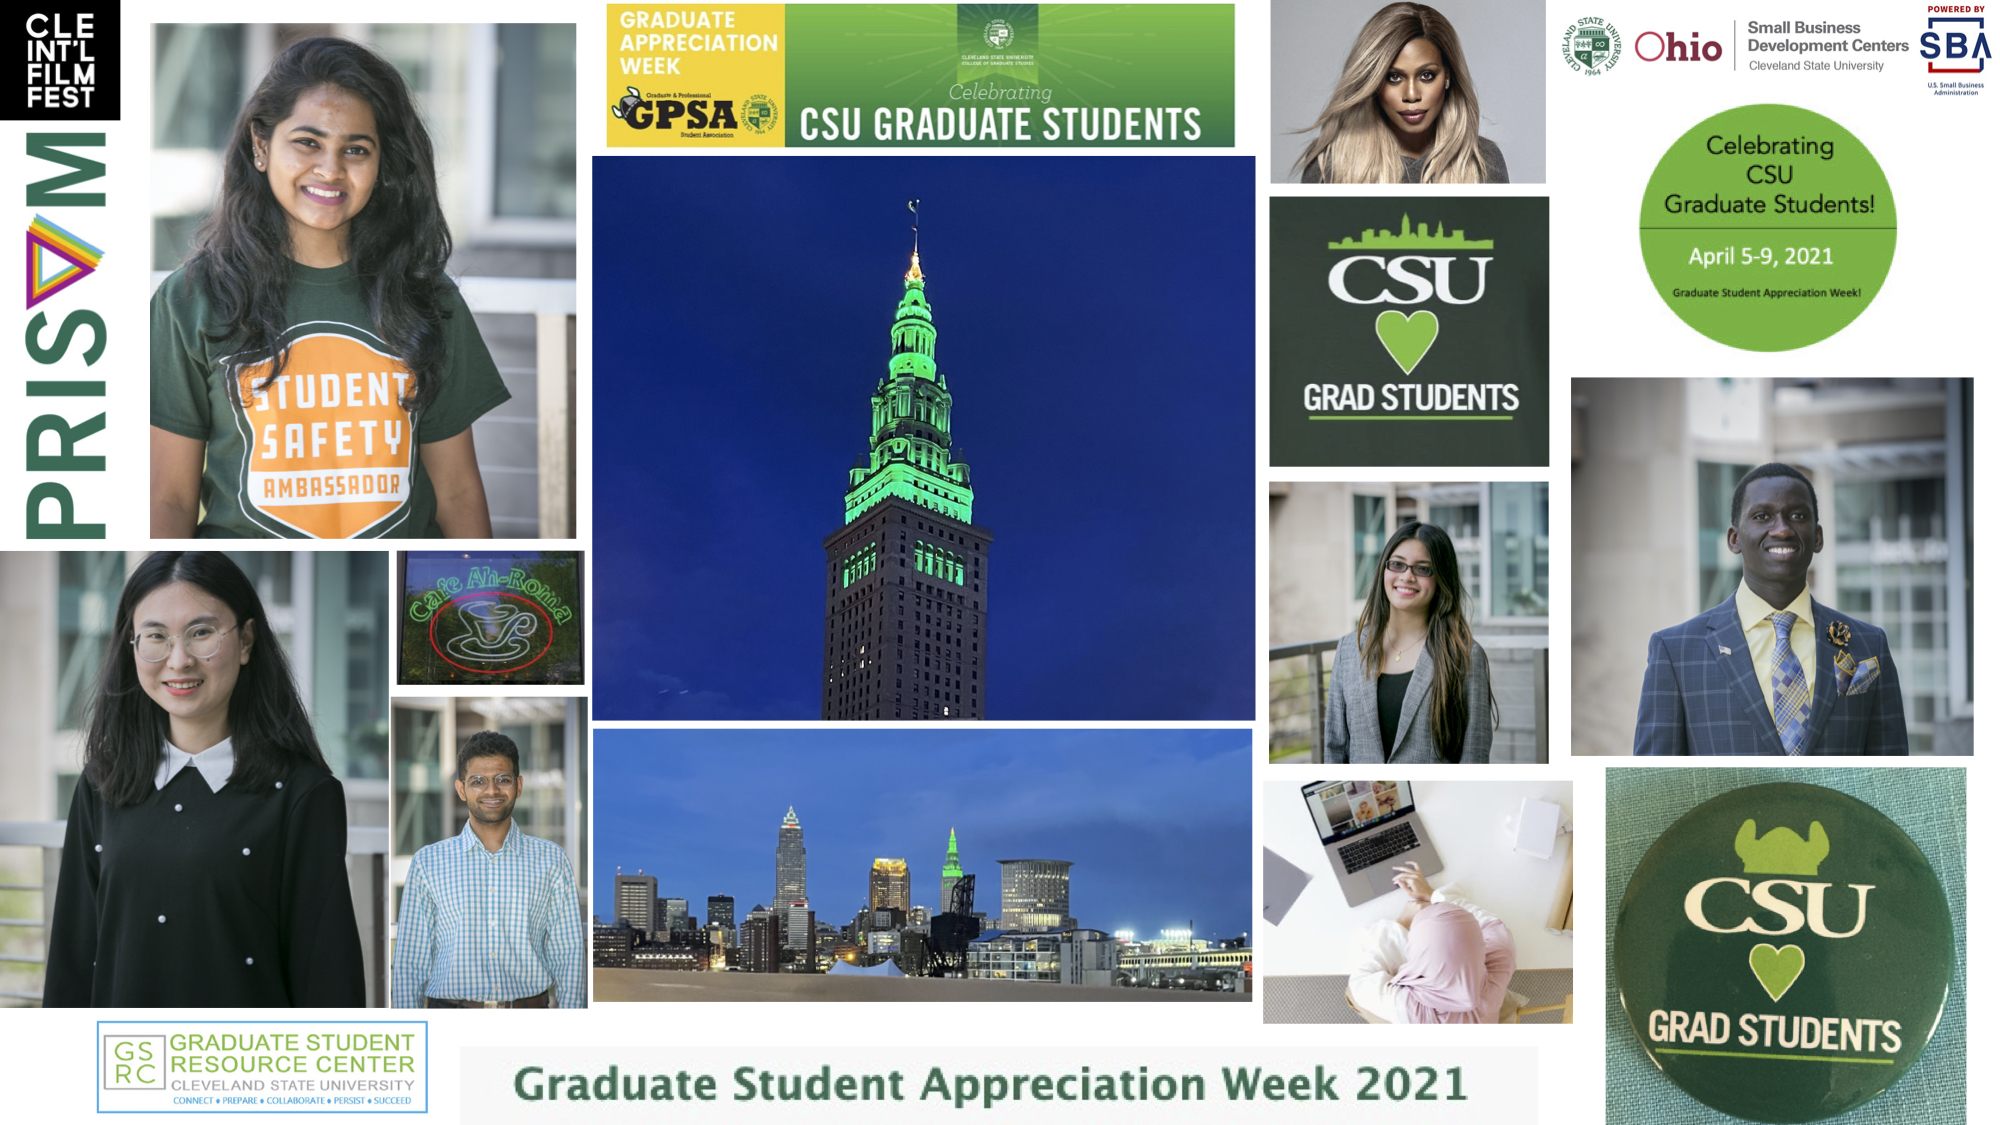 Collage that highlights events from GSAW 2021. It includes photos of graduate students, terminal tower, logos, and advertisement art from the week.